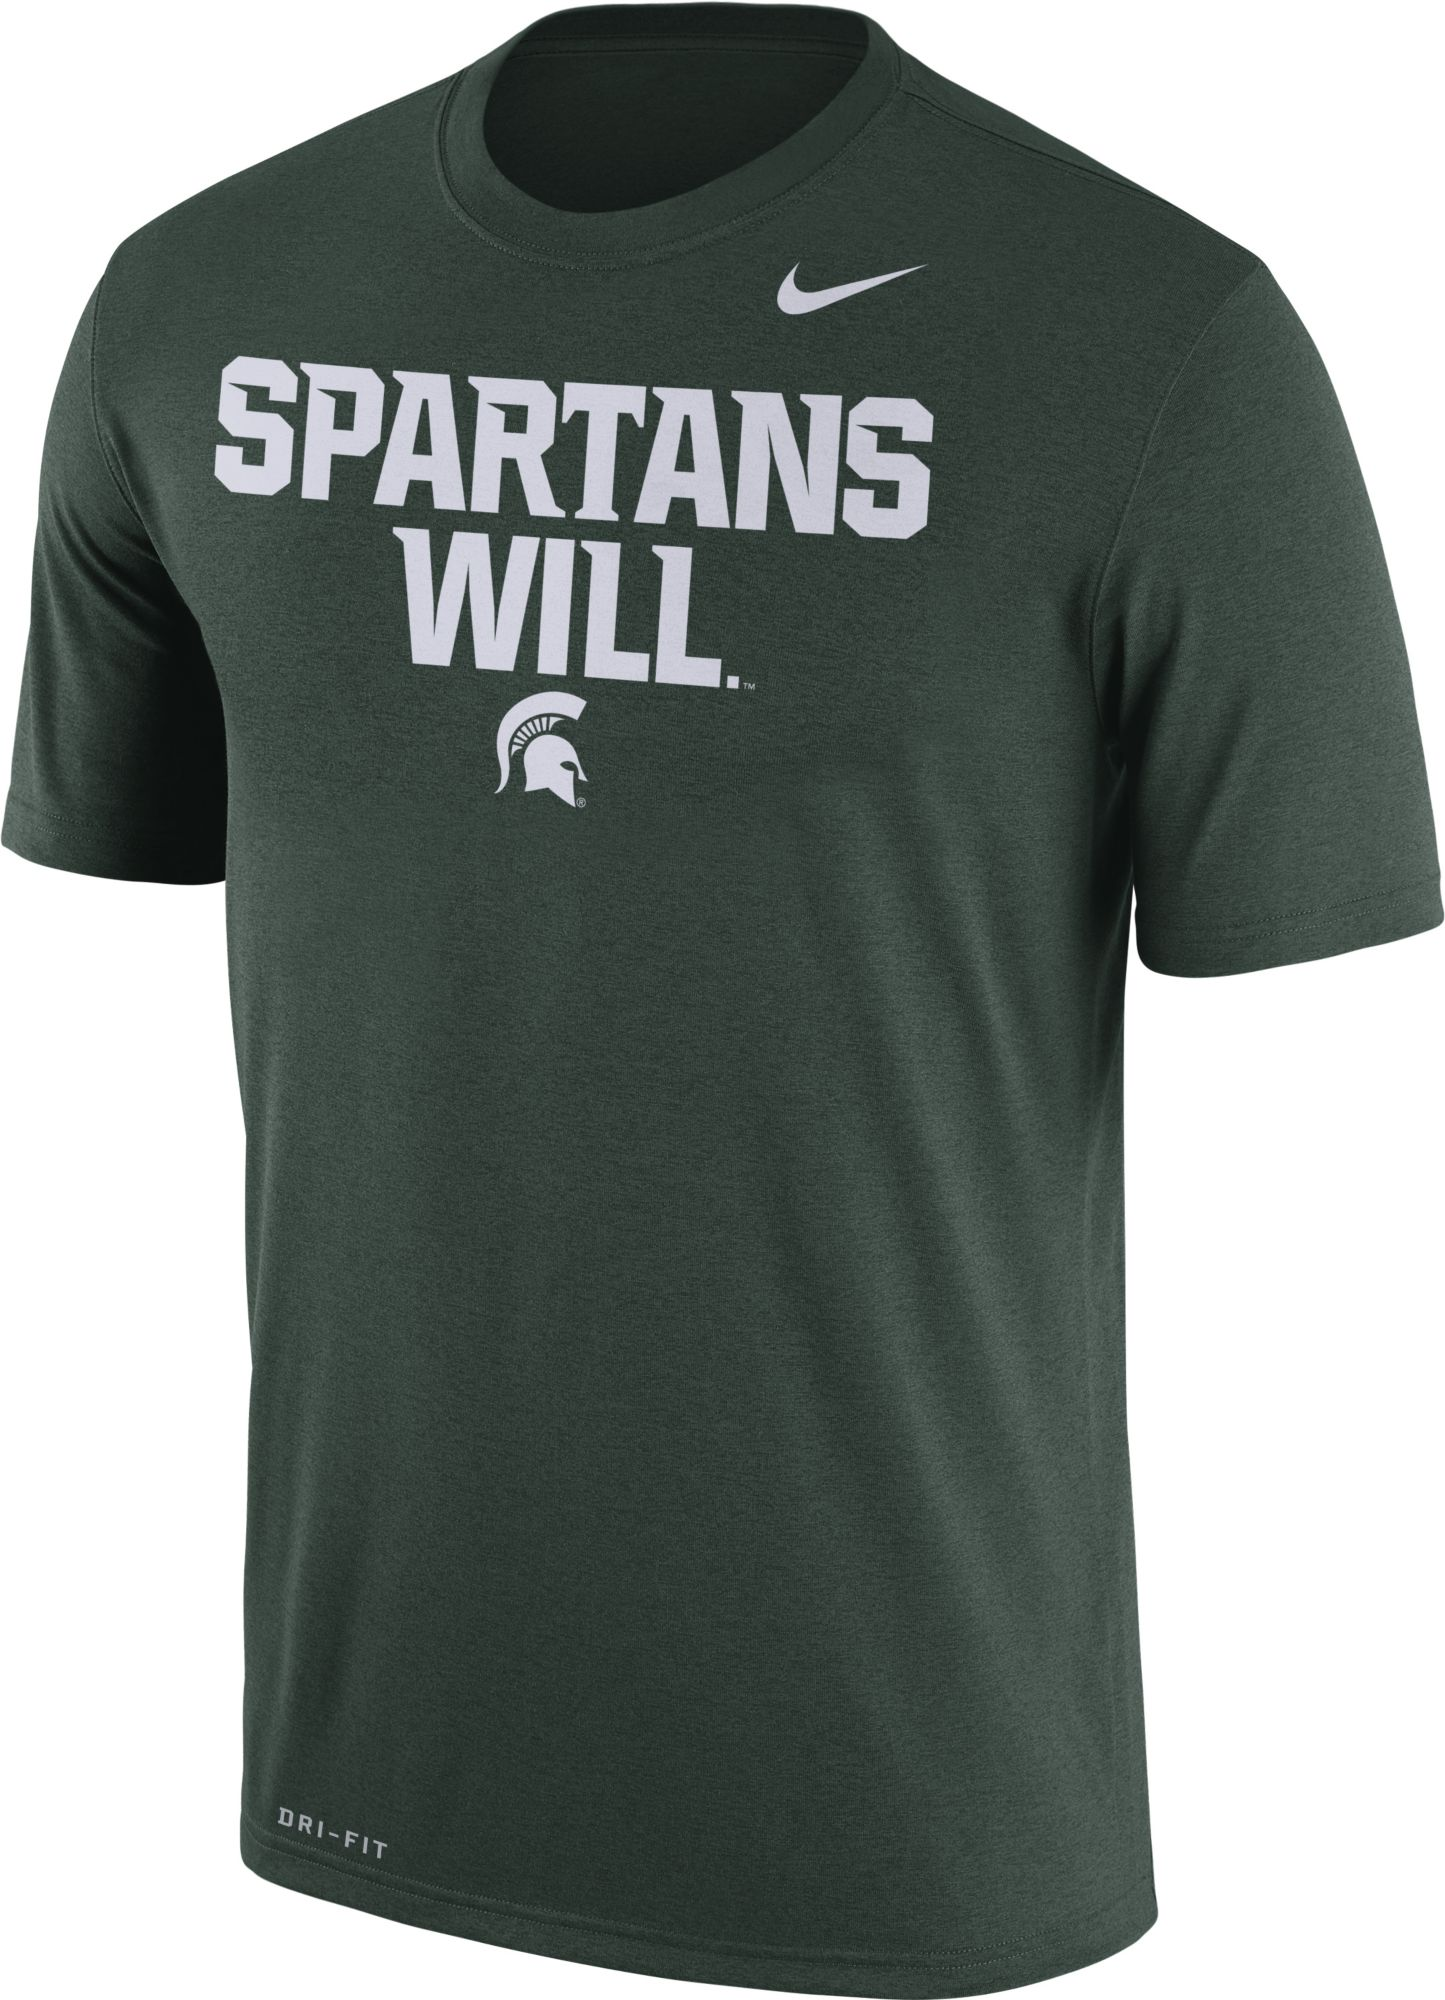 Black t shirts kohls - Product Image Nike Men S Michigan State Spartans Green Spartans Will Authentic Local Legend T Shirt